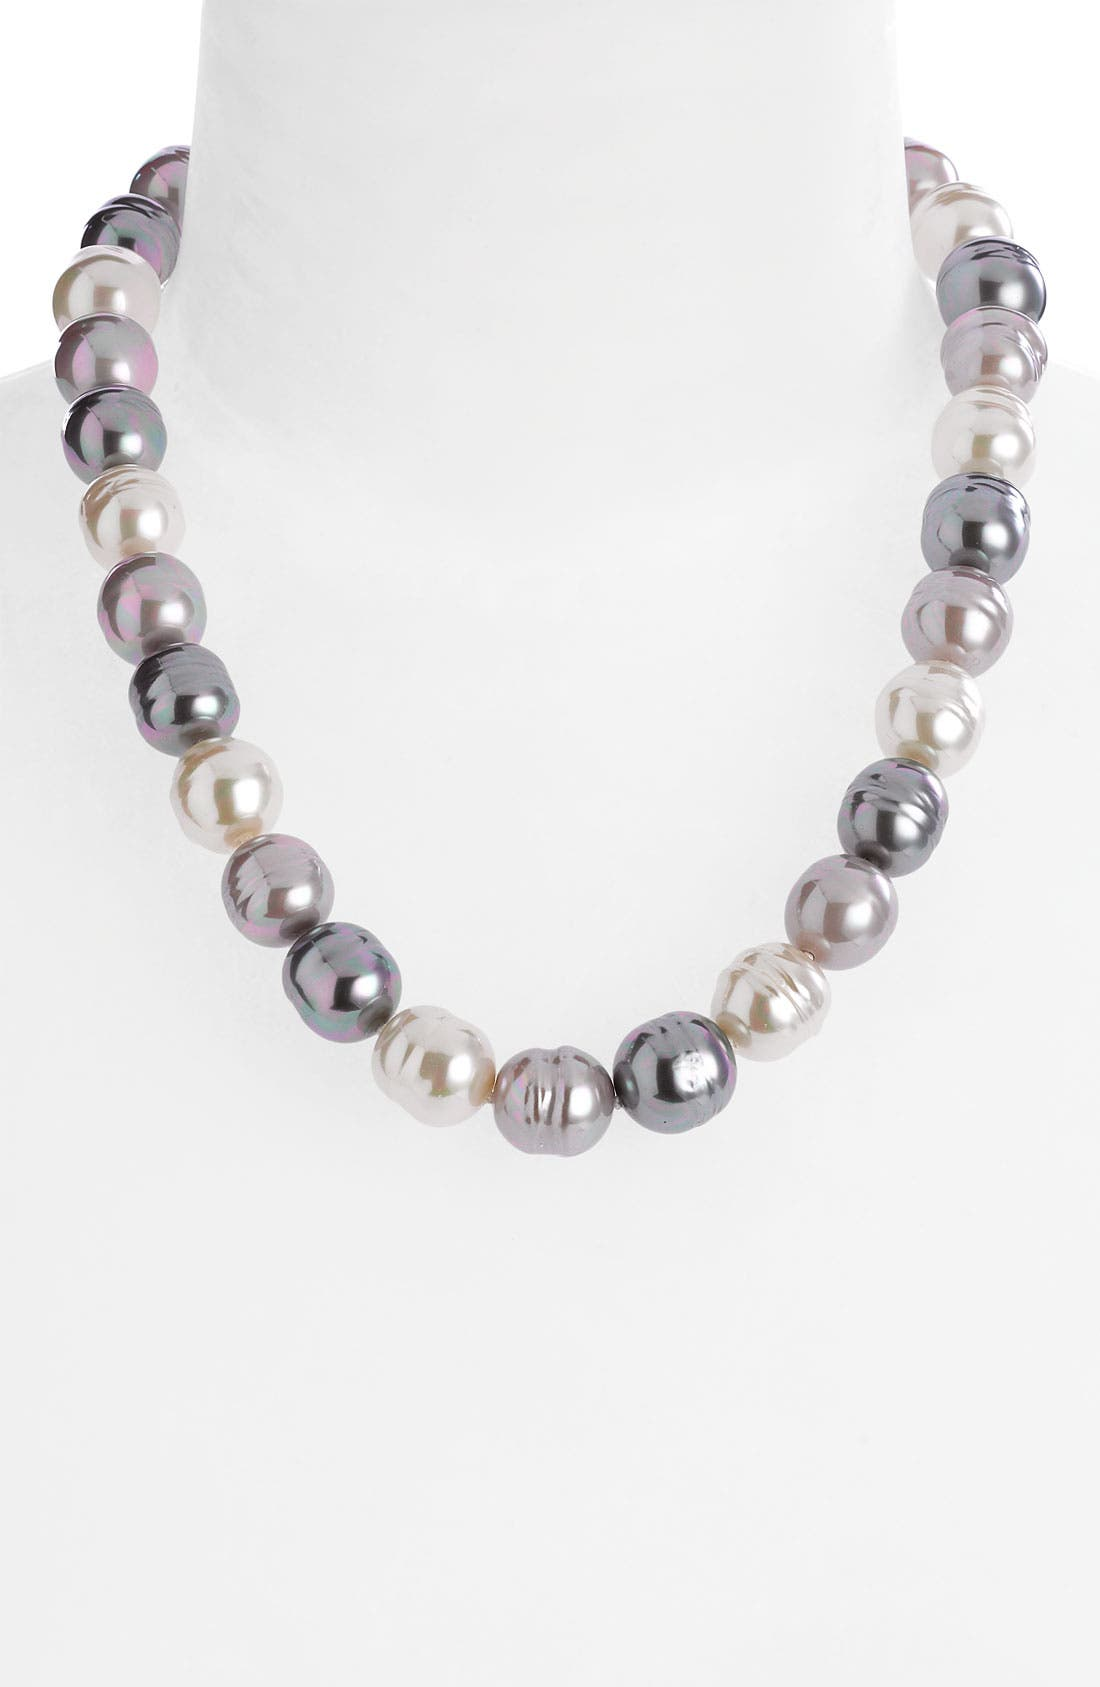 14mm Baroque Pearl Necklace,                             Alternate thumbnail 2, color,                             Grey/ Silver